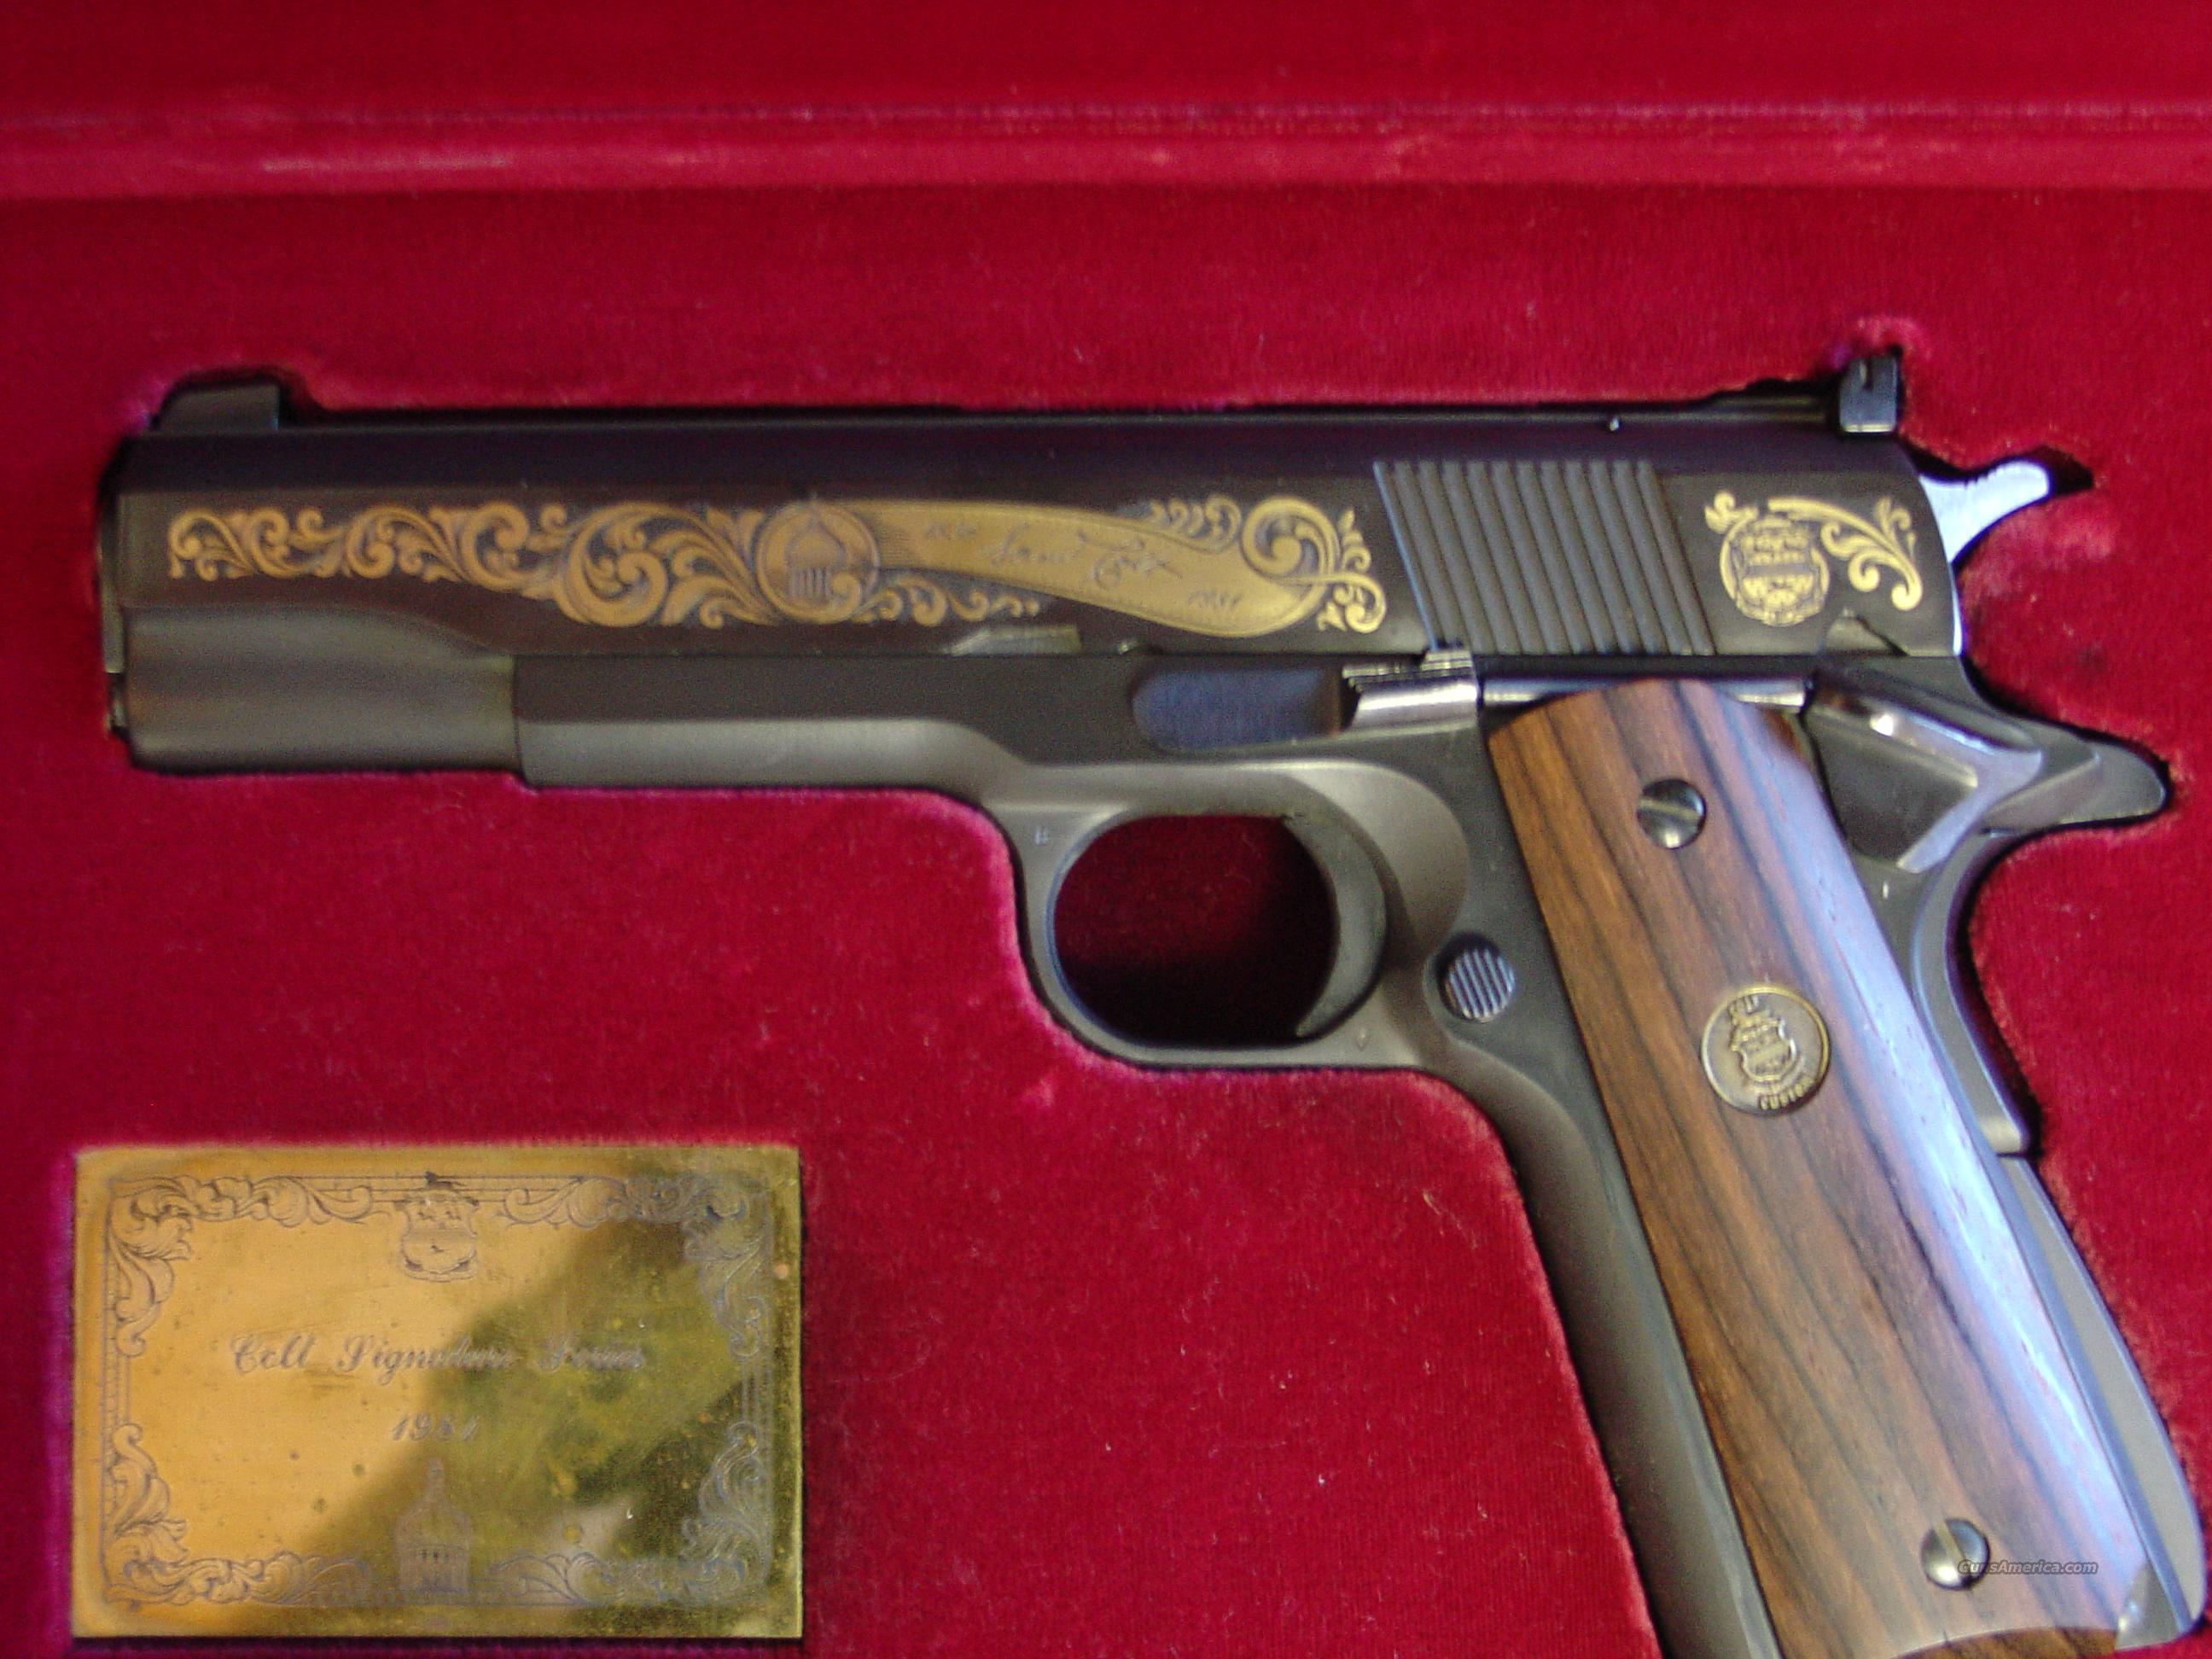 Colt 1911 ACE,22LR,Signature Series,full size,all steel,24K gold engraved,made in 1981,custom grips,& custom fitted wood presentation case,unfired  Guns > Pistols > Colt Automatic Pistols (22 Cal.)